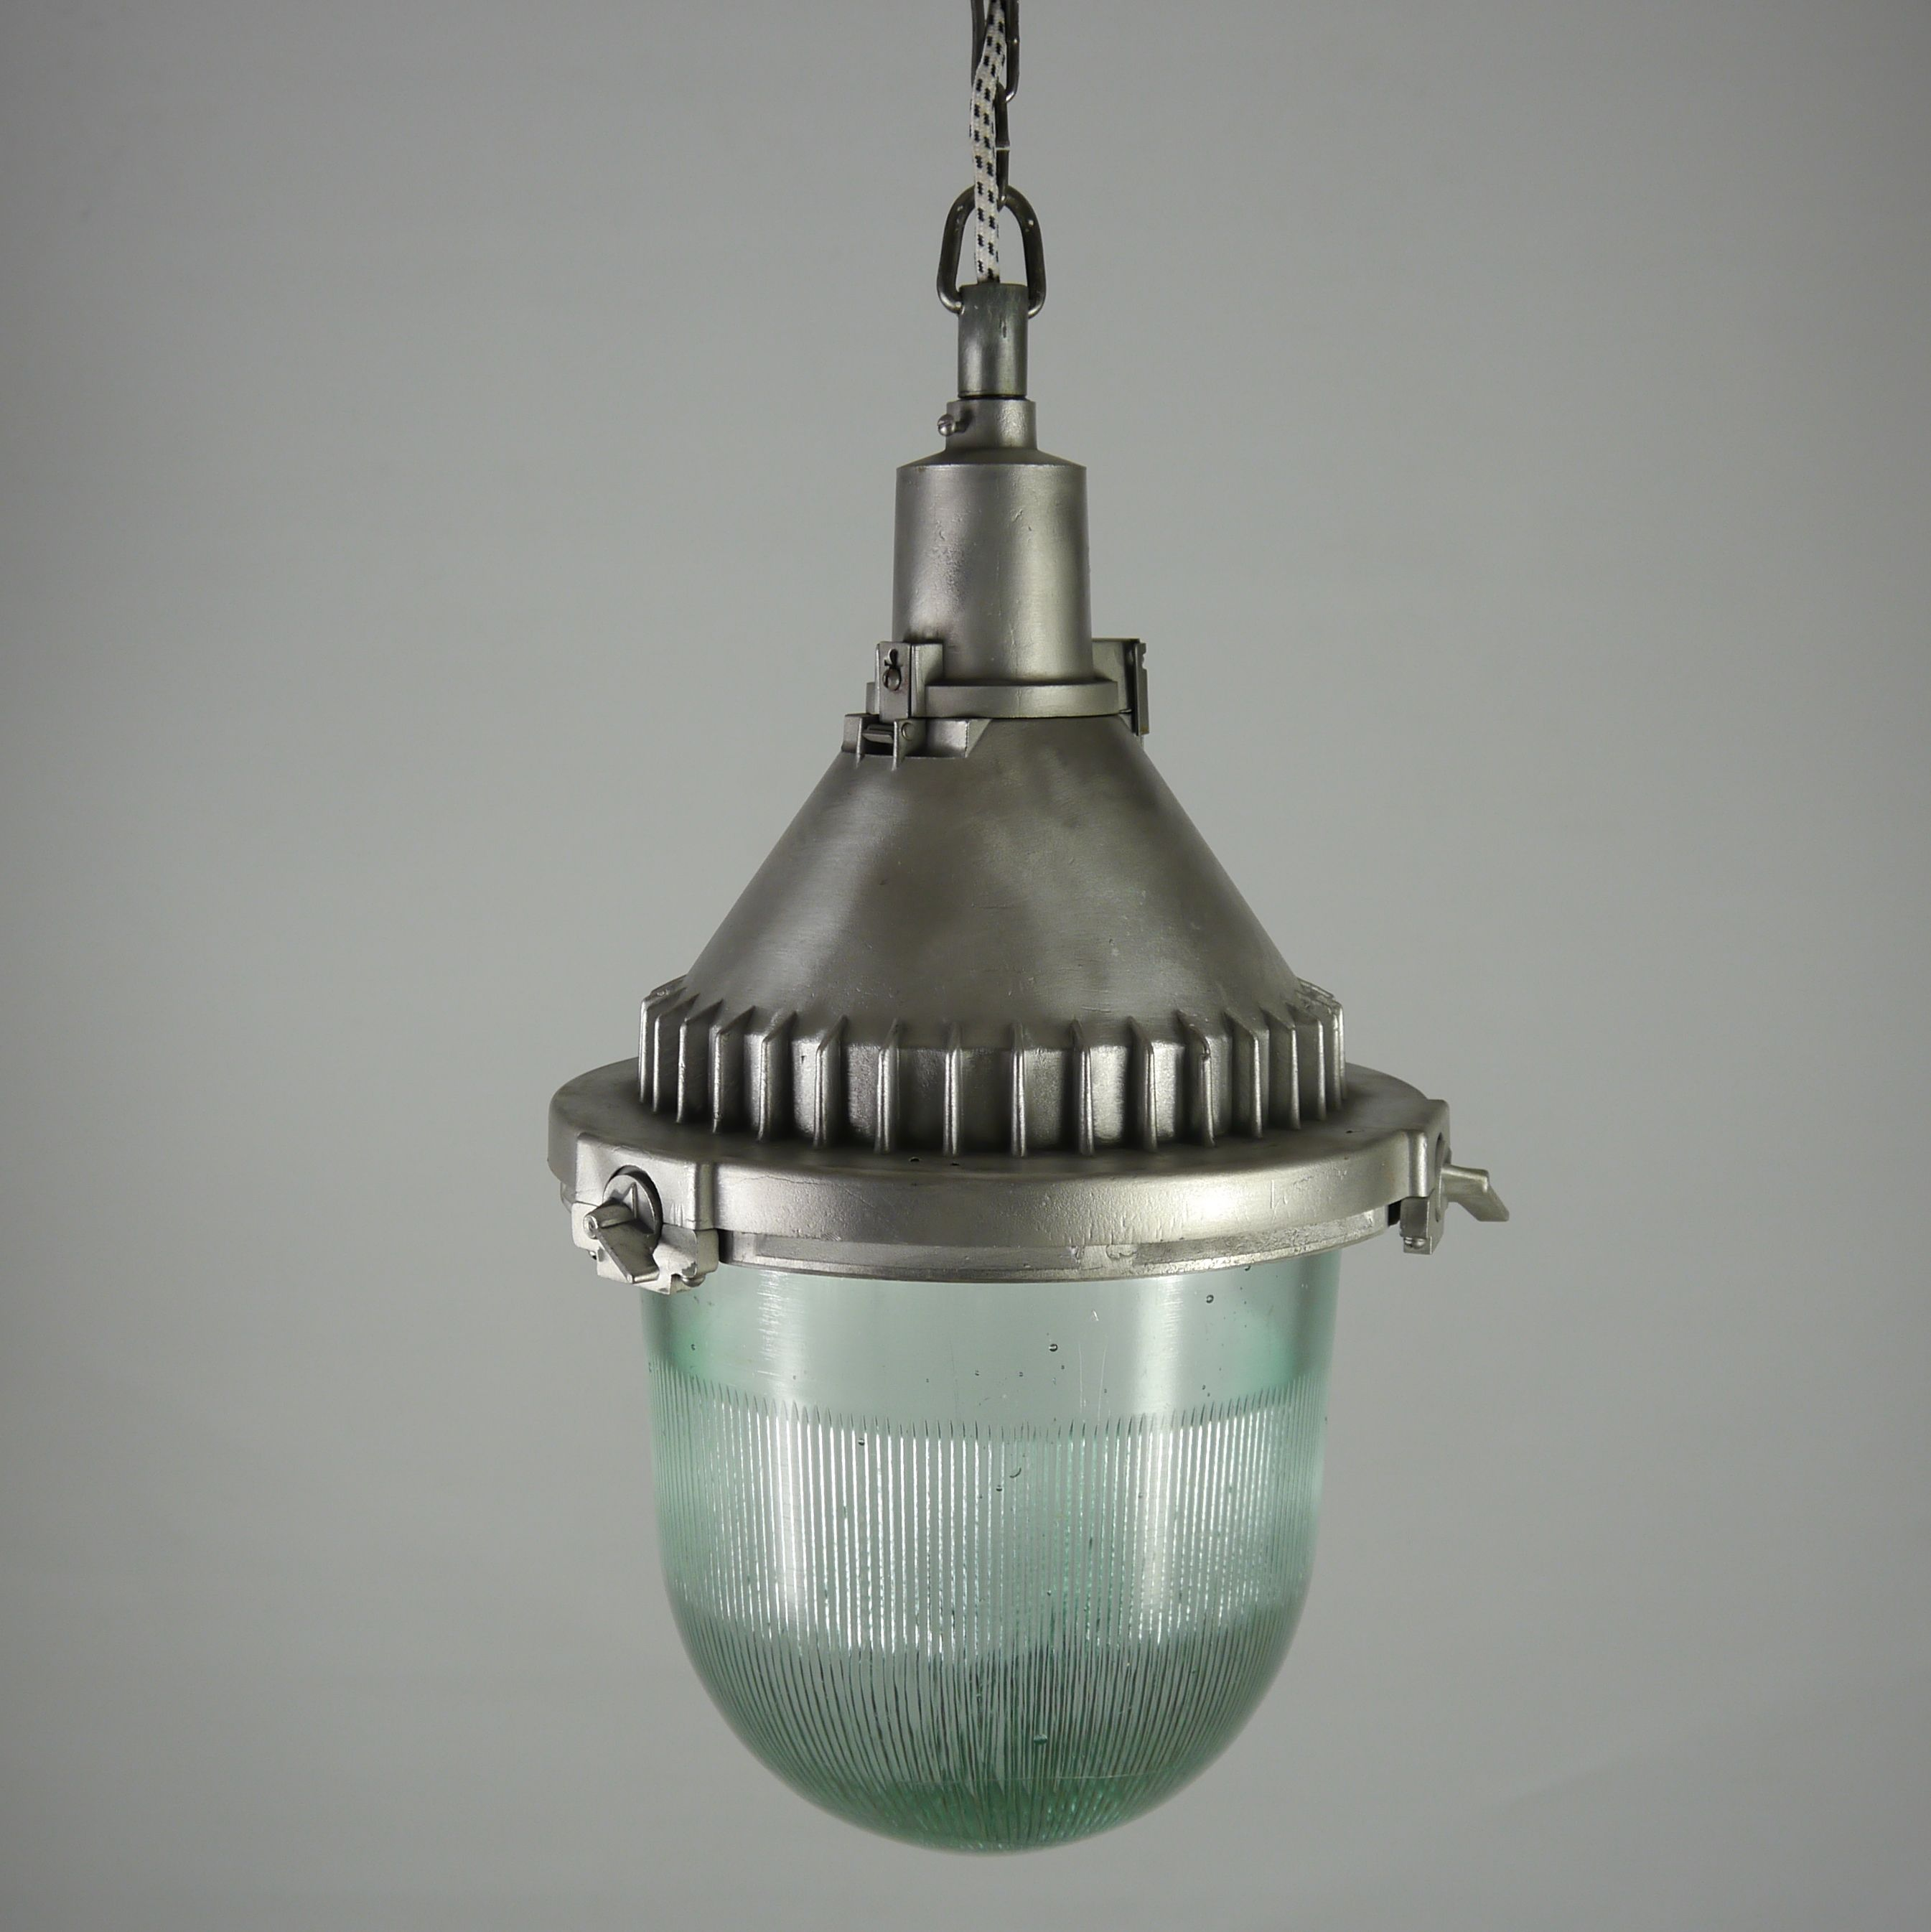 An industrial pendant light recovered from a factory in russia an industrial pendant light recovered from a factory in russia dating from the rewired the fittings incorporate an screw fit bulb holder and new black arubaitofo Gallery